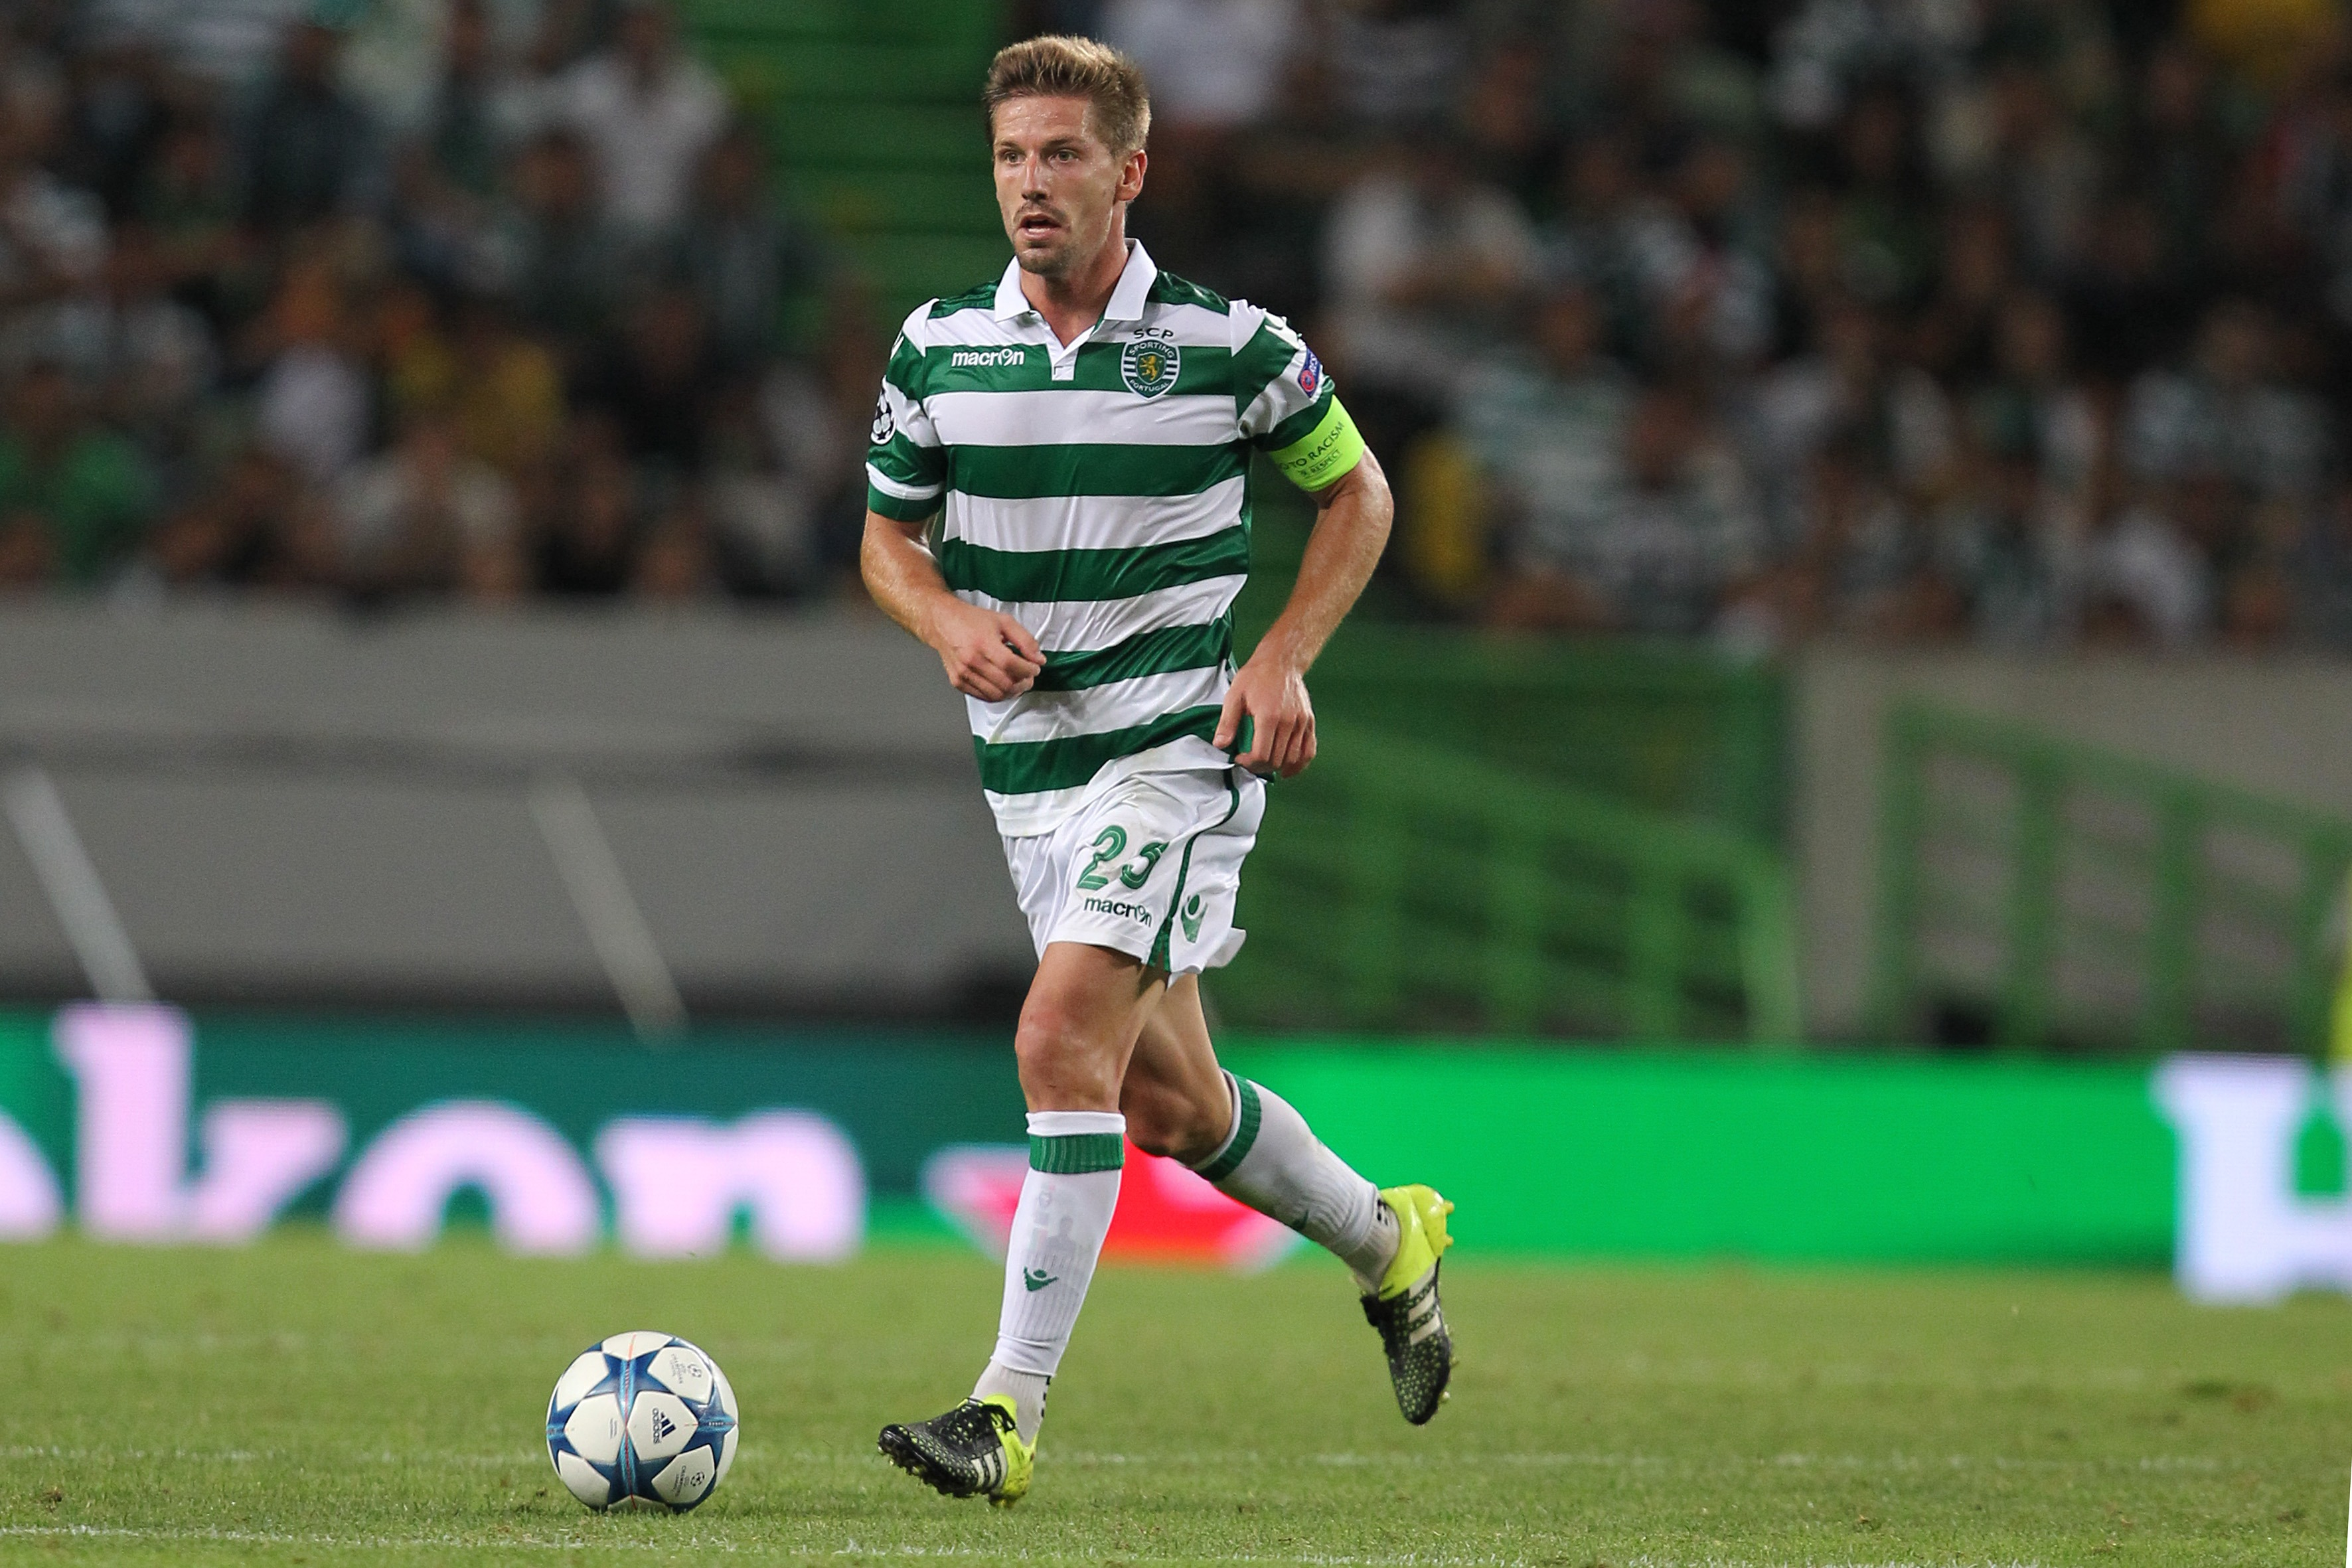 LISBON, PORTUGAL - AUGUST 18: Sporting's midfielder Adrien Silva during the UEFA Champions League qualifying round play-off first leg match between Sporting CP and CSKA Moscow at Estadio Jose Alvalade on August 18, 2015 in Lisbon, Portugal. (Photo by Carlos Rodrigues/Getty Images)